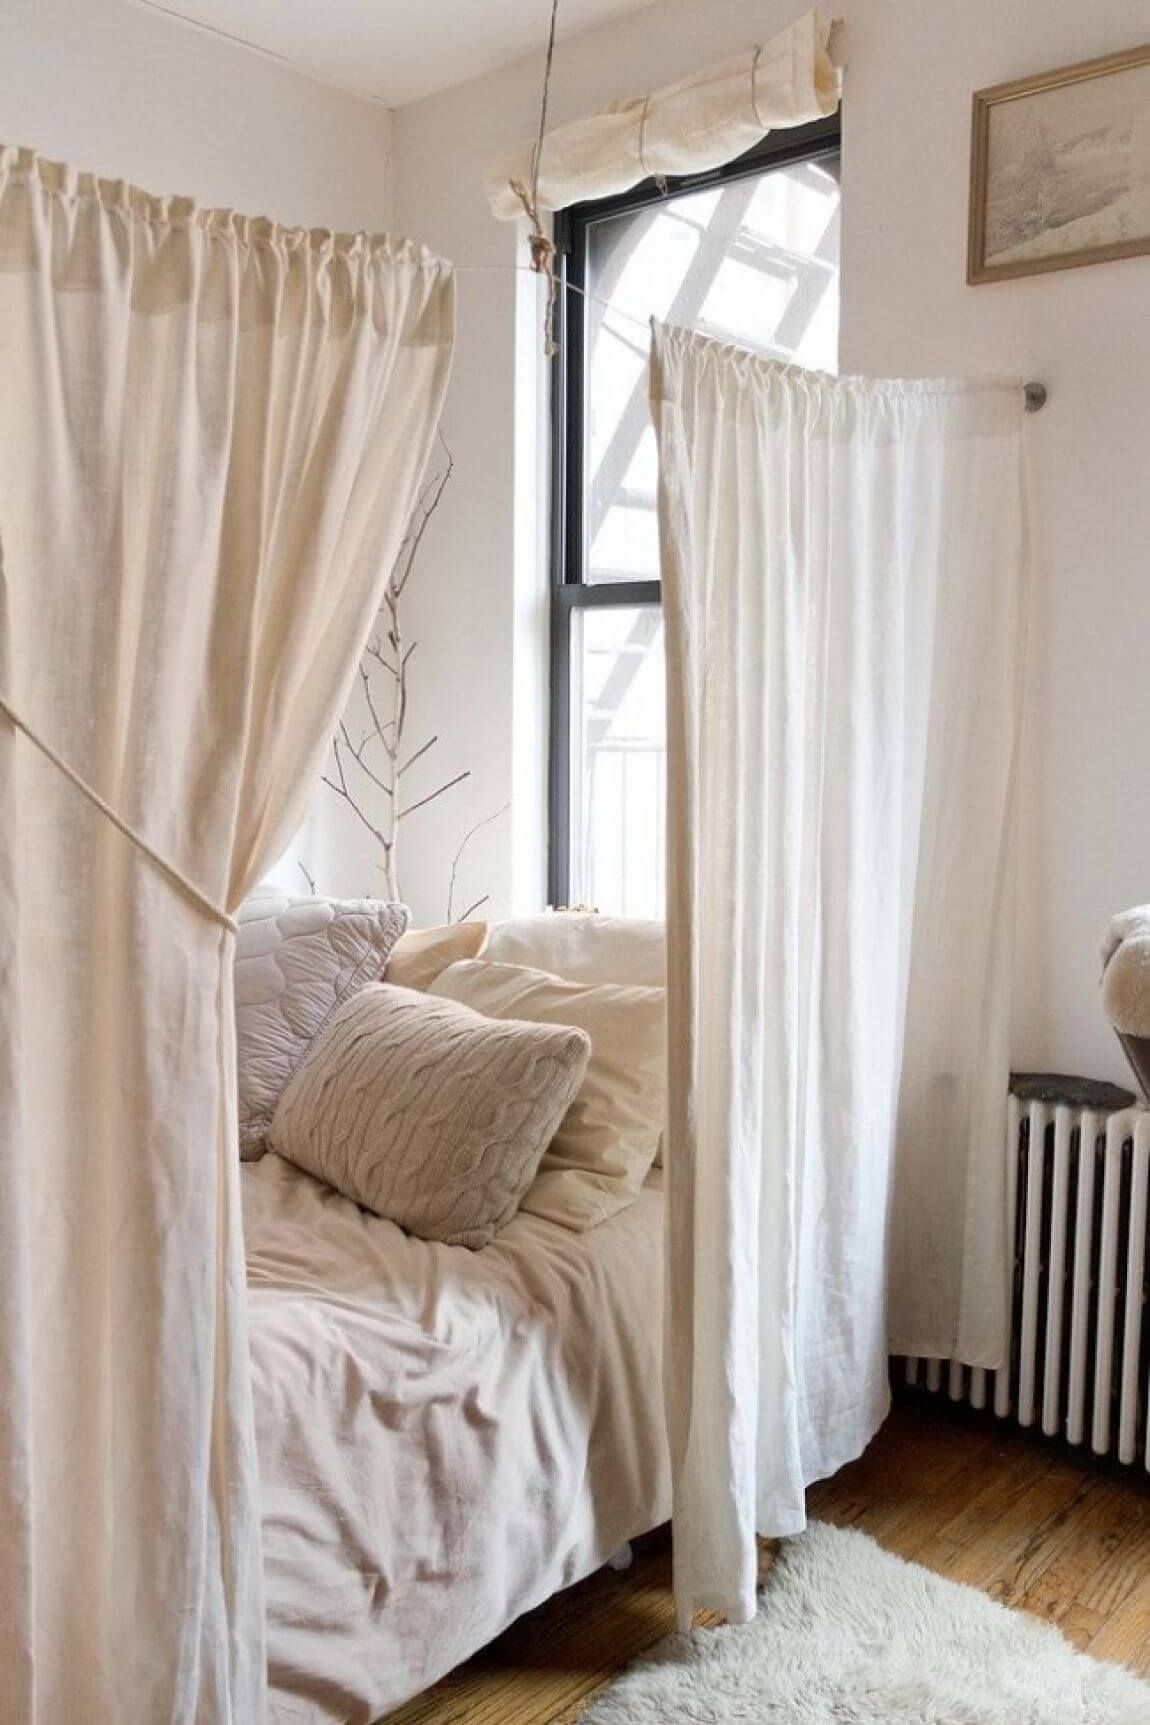 small bedroom designs and ideas for maximizing your small space